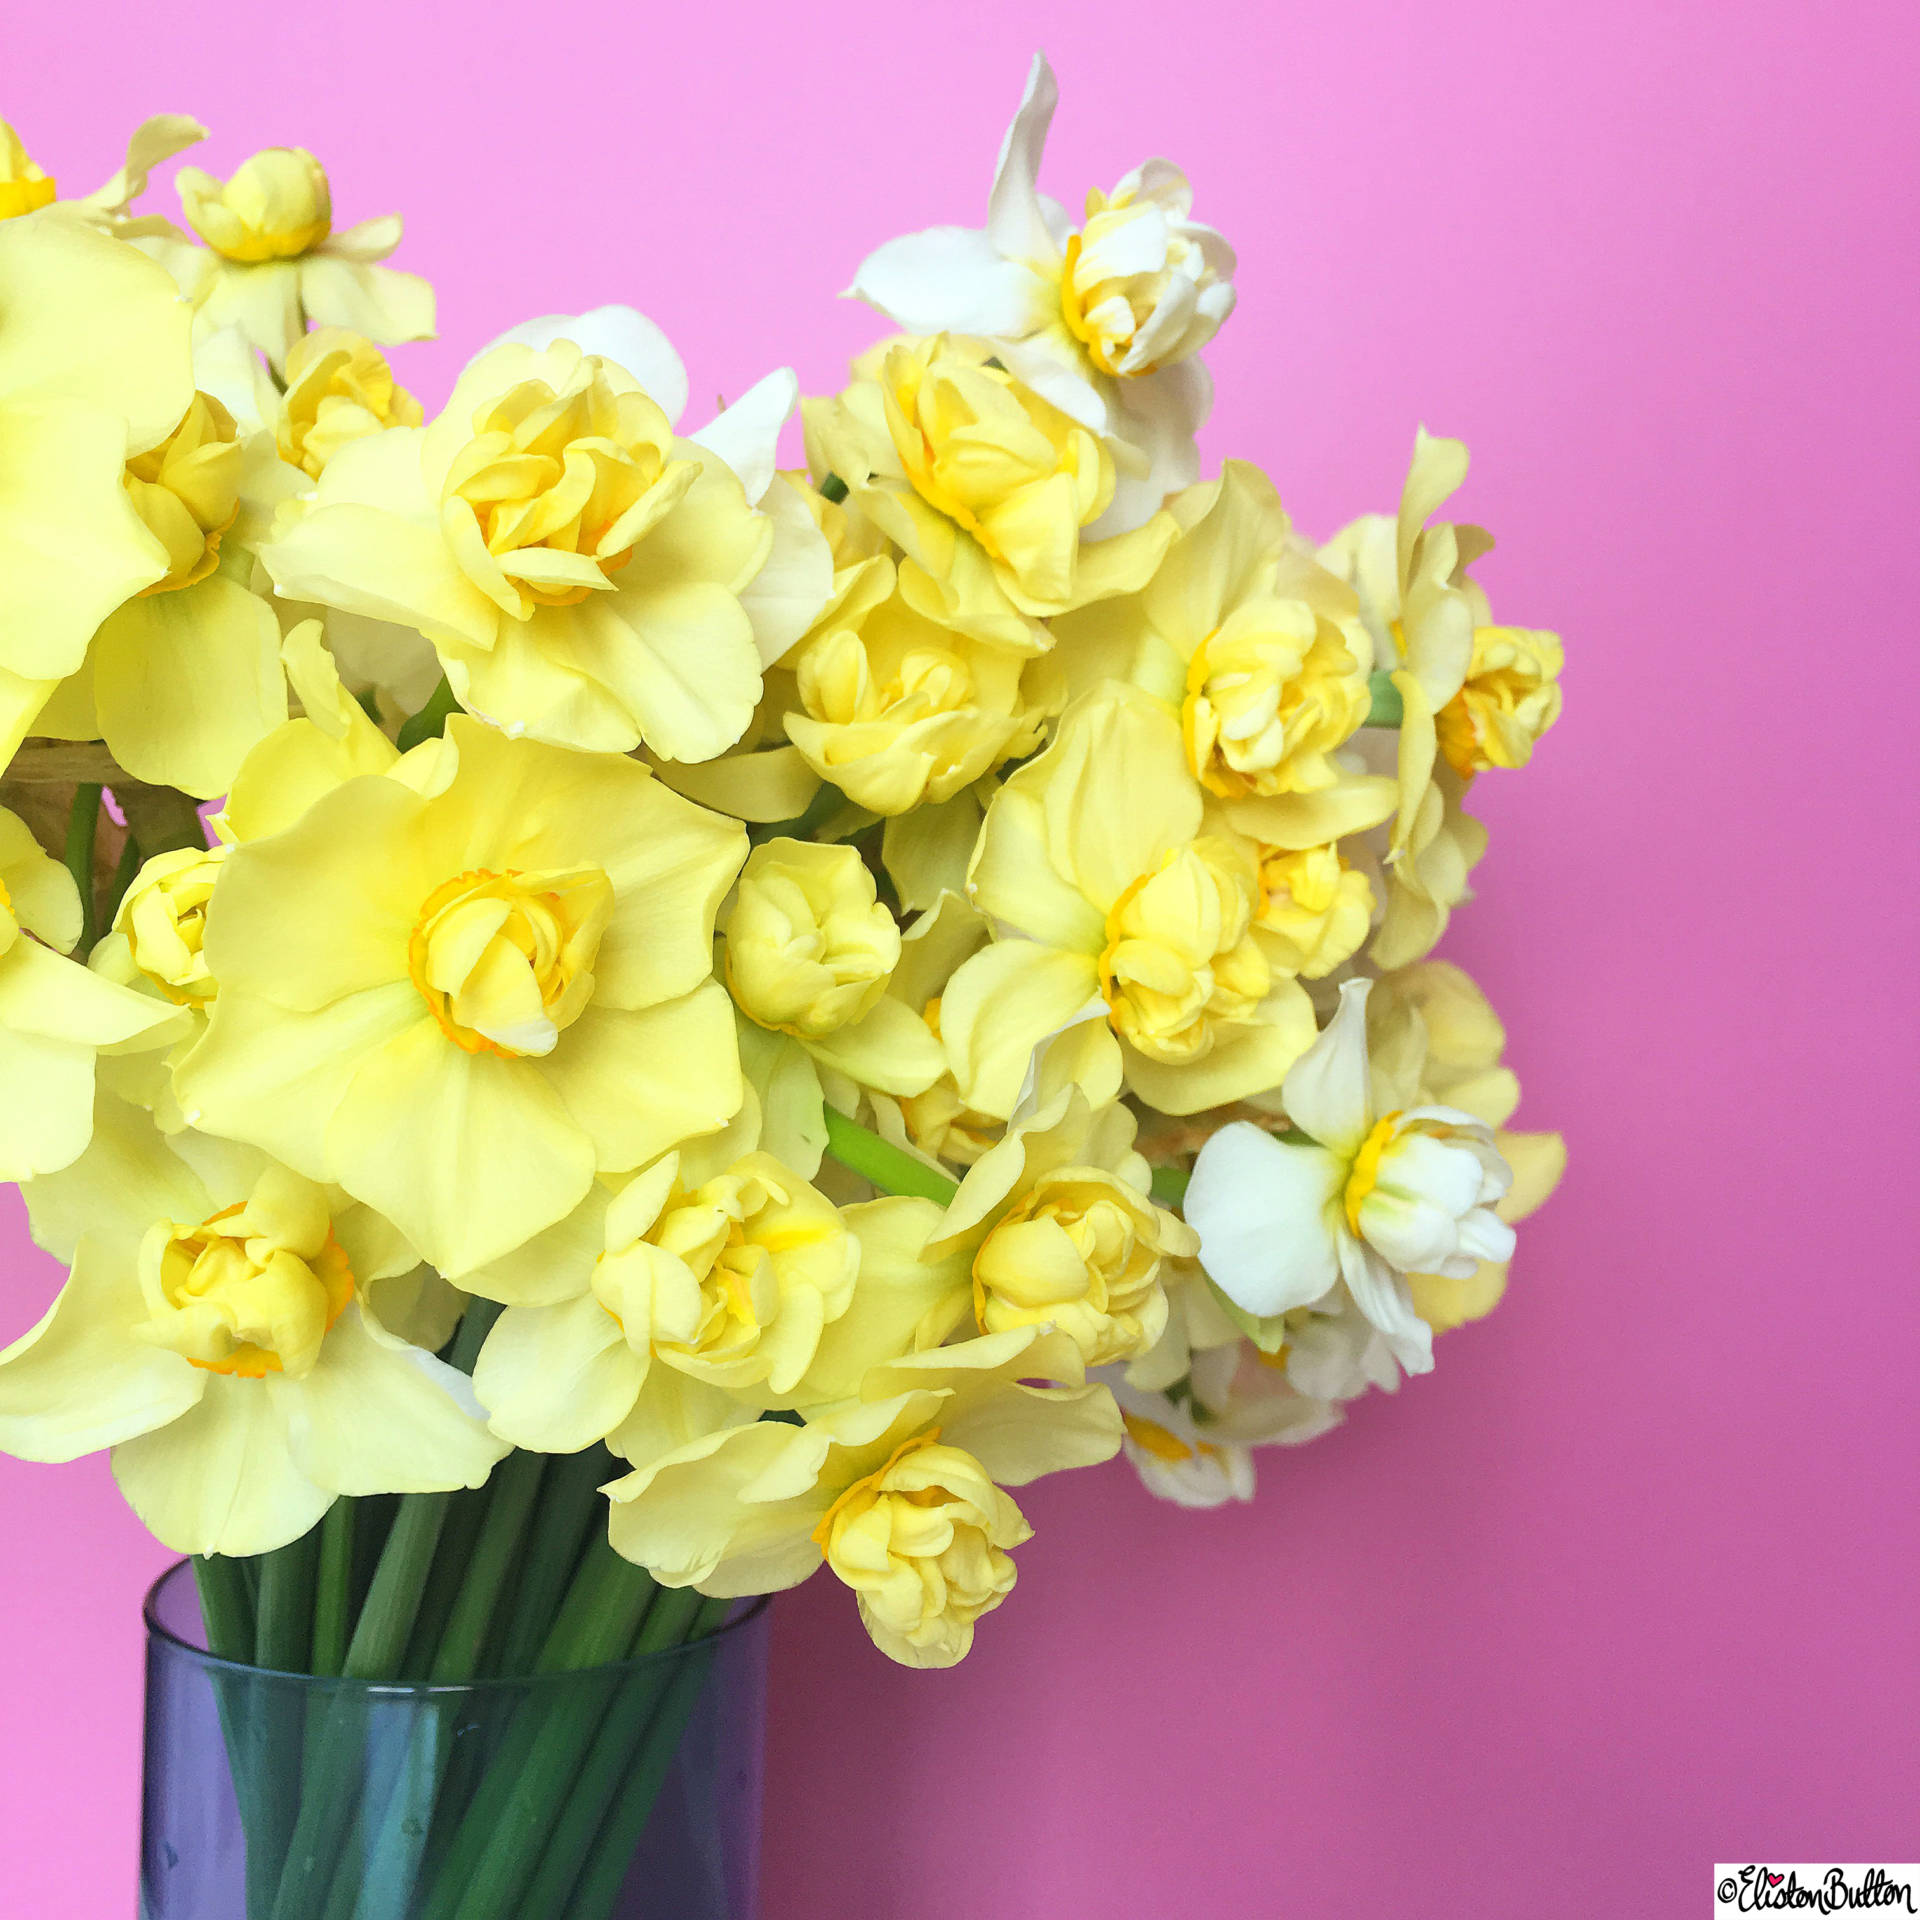 Day 21 - Cut - Yellow Daffodils with Pink Background - Photo-a-Day – April 2016 at www.elistonbutton.com - Eliston Button - That Crafty Kid – Art, Design, Craft & Adventure.